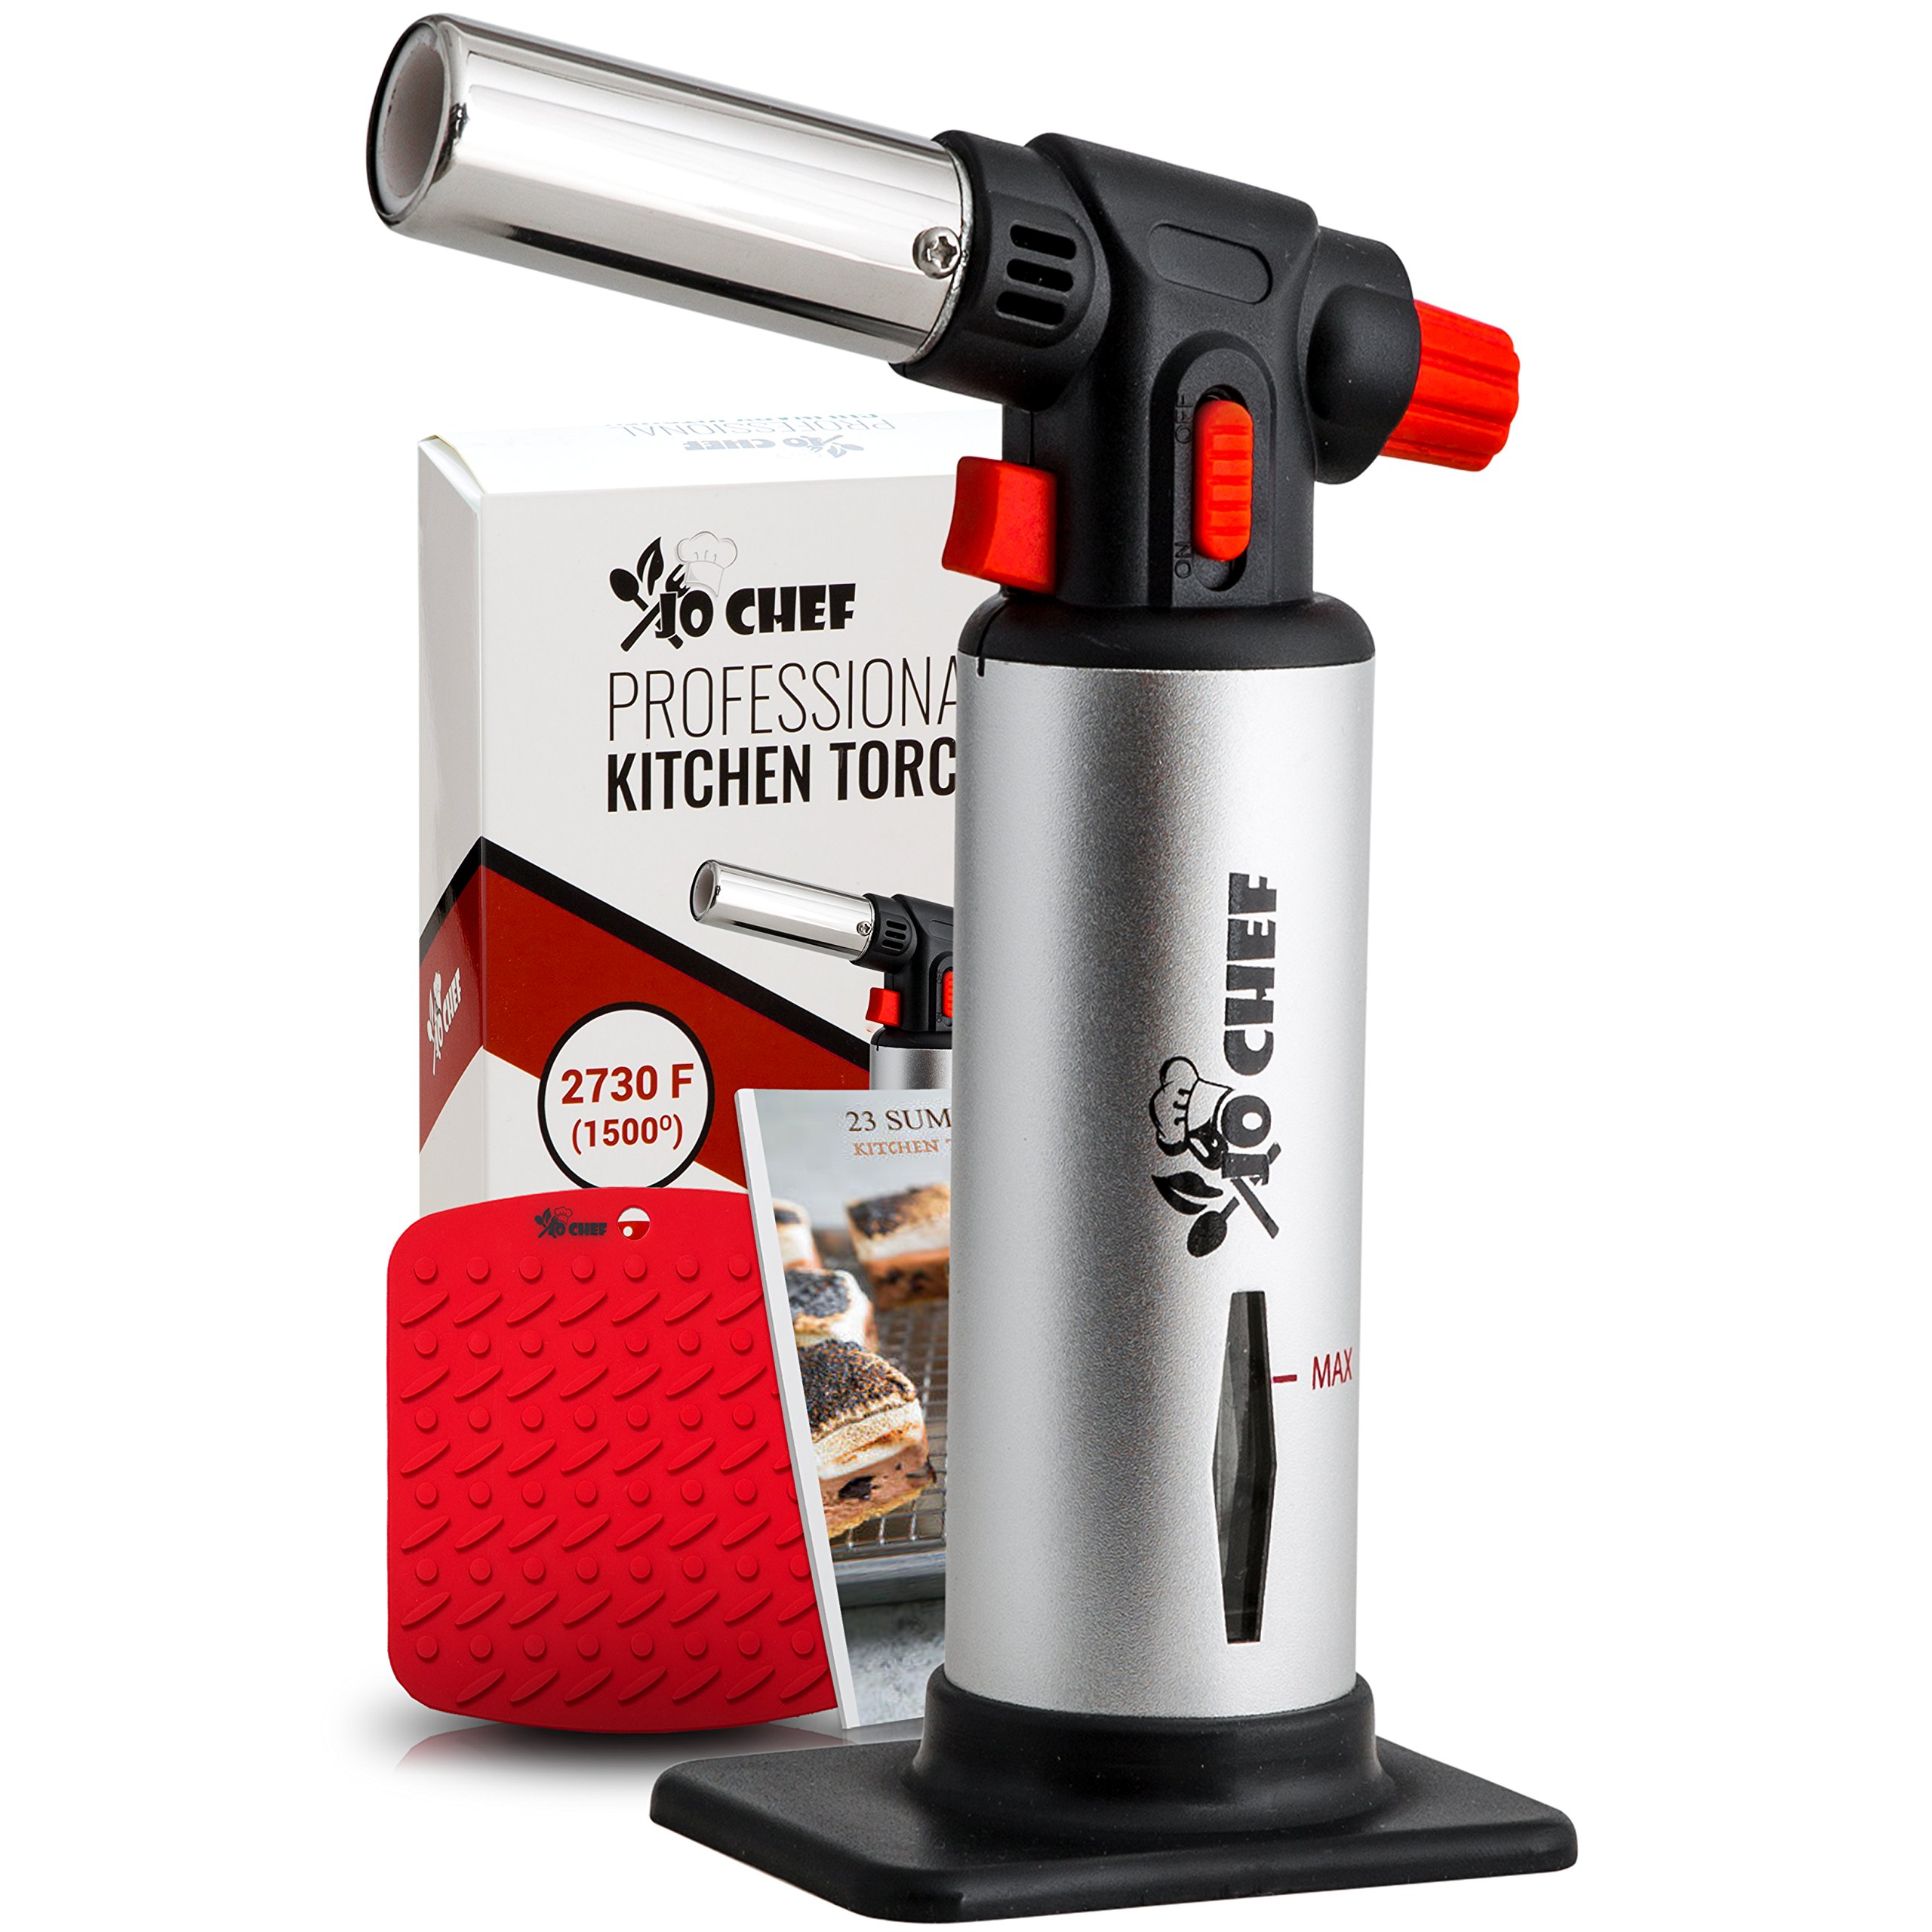 Jo Chef Professional Kitchen Torch – Aluminum Refillable Crème Brulee Blow Torch – Safety Lock & Adjustable Flame + Fuel gauge – for Cooking, Baking, BBQ – FREE Heat Resistant Place Mat + Recipe eBook